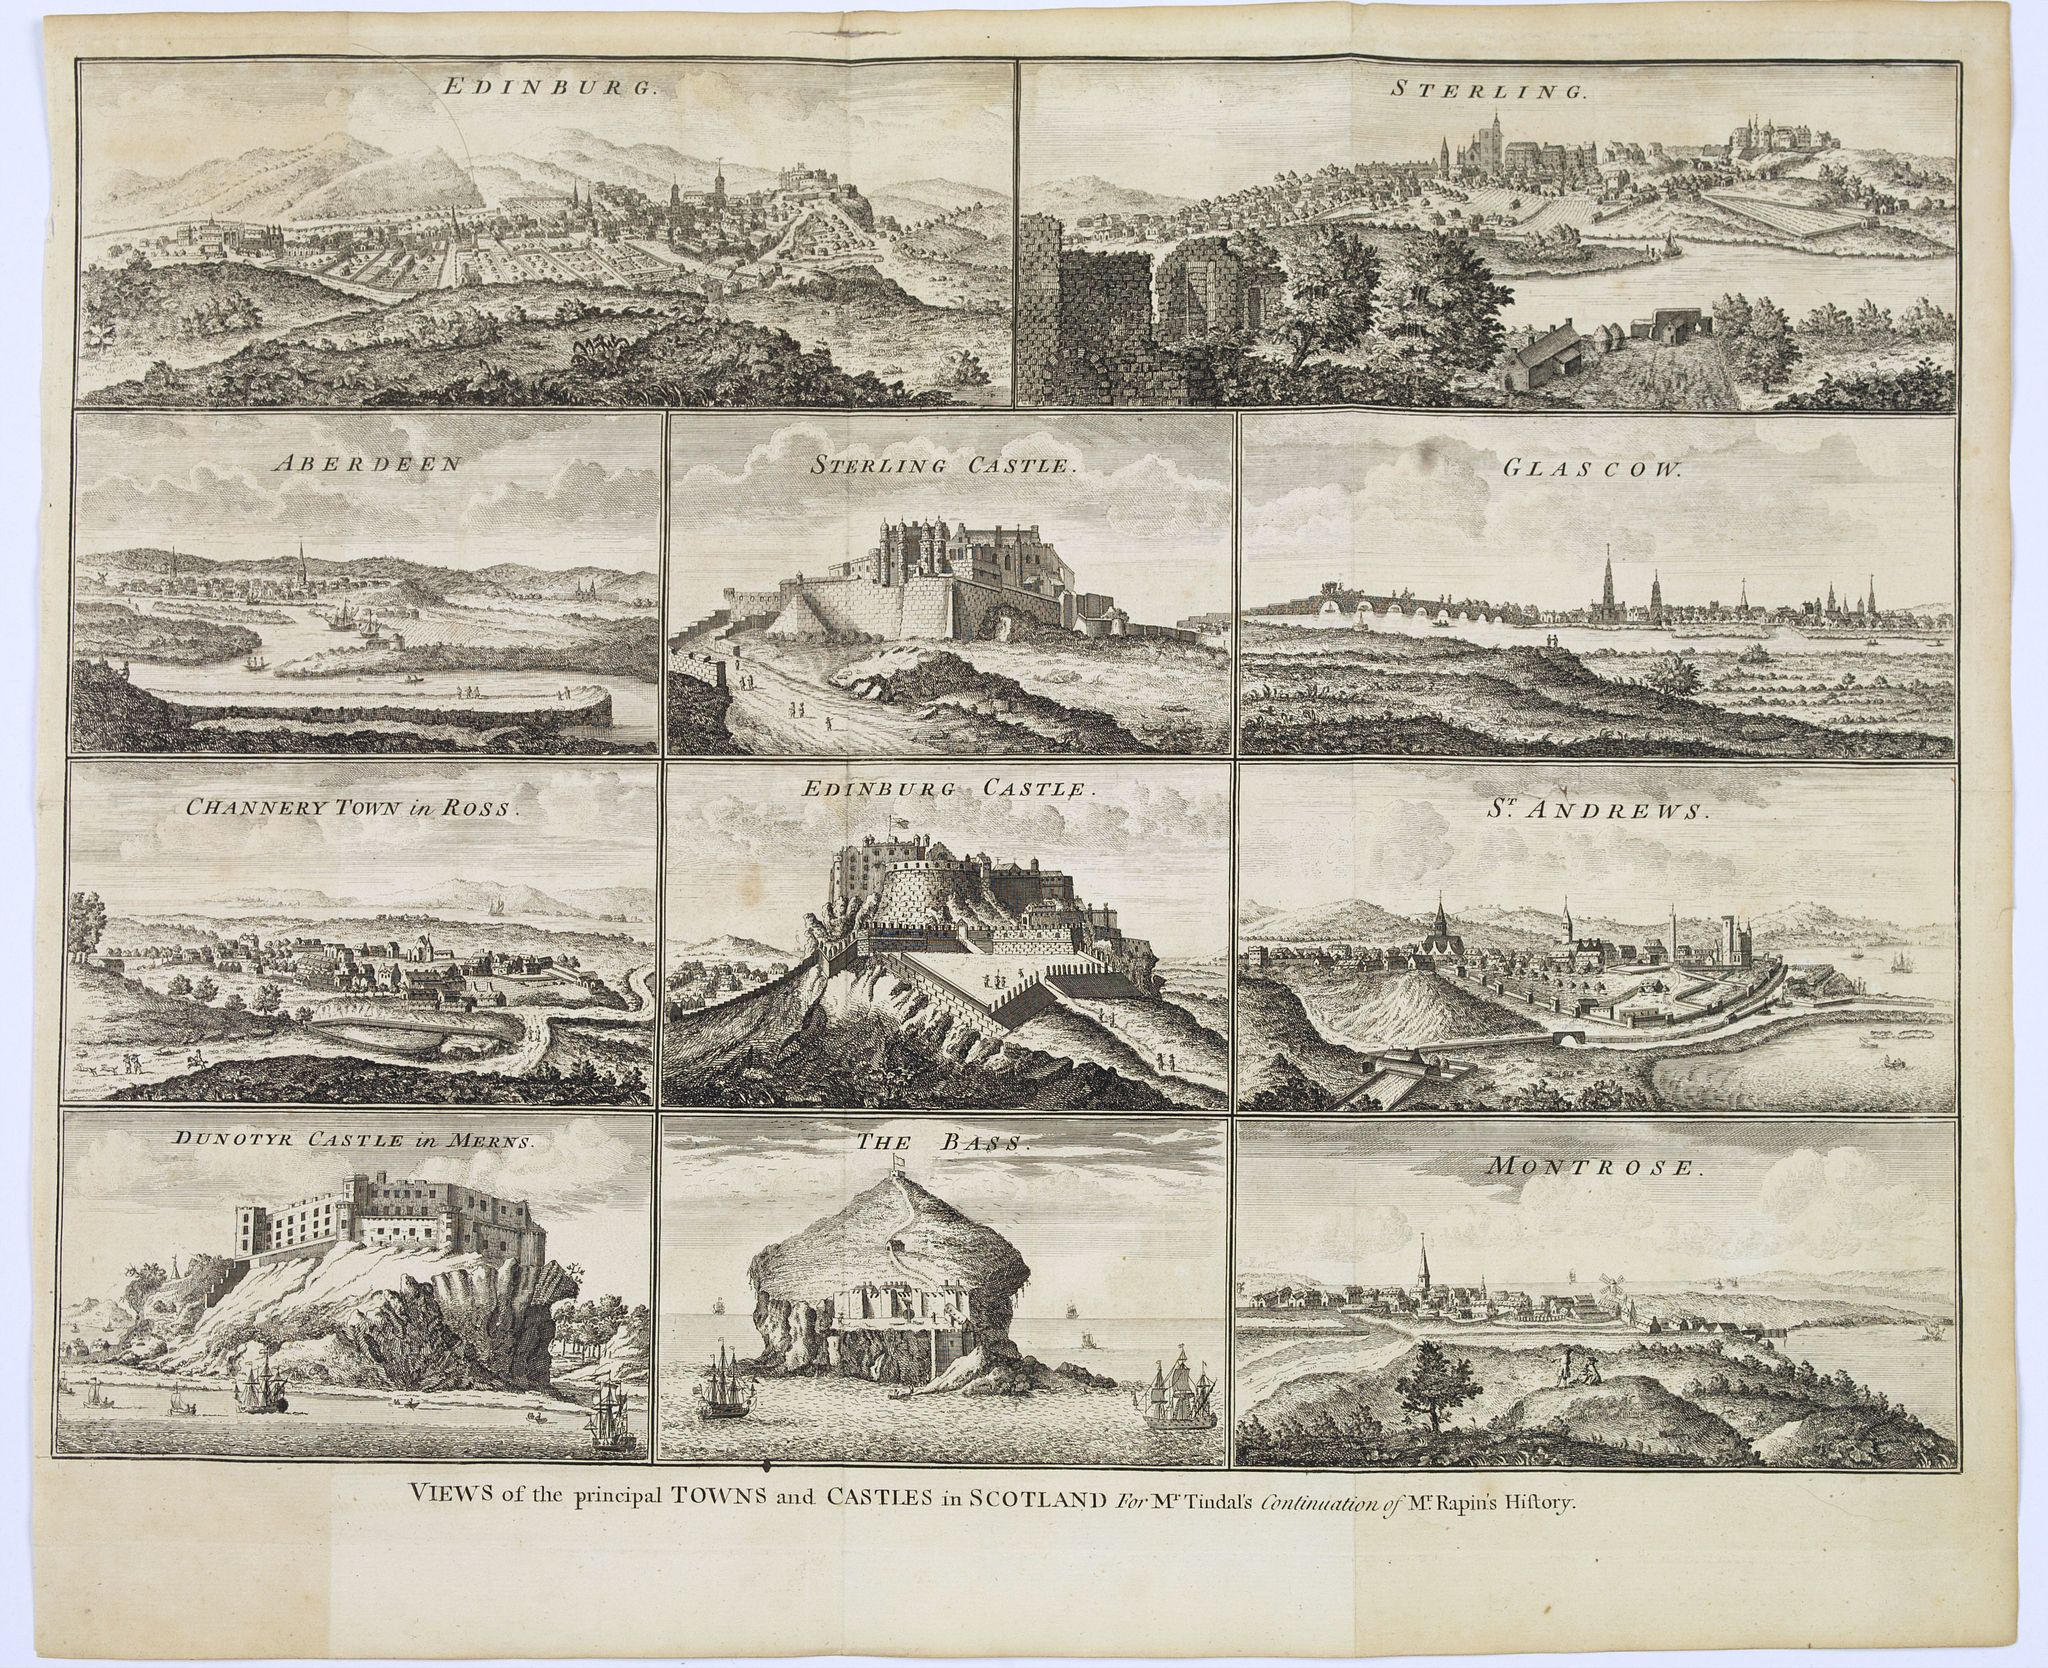 RAPIN / TINDAL.,  Views of the pricipal Towns and Castles in Scotland.., antique map, old maps